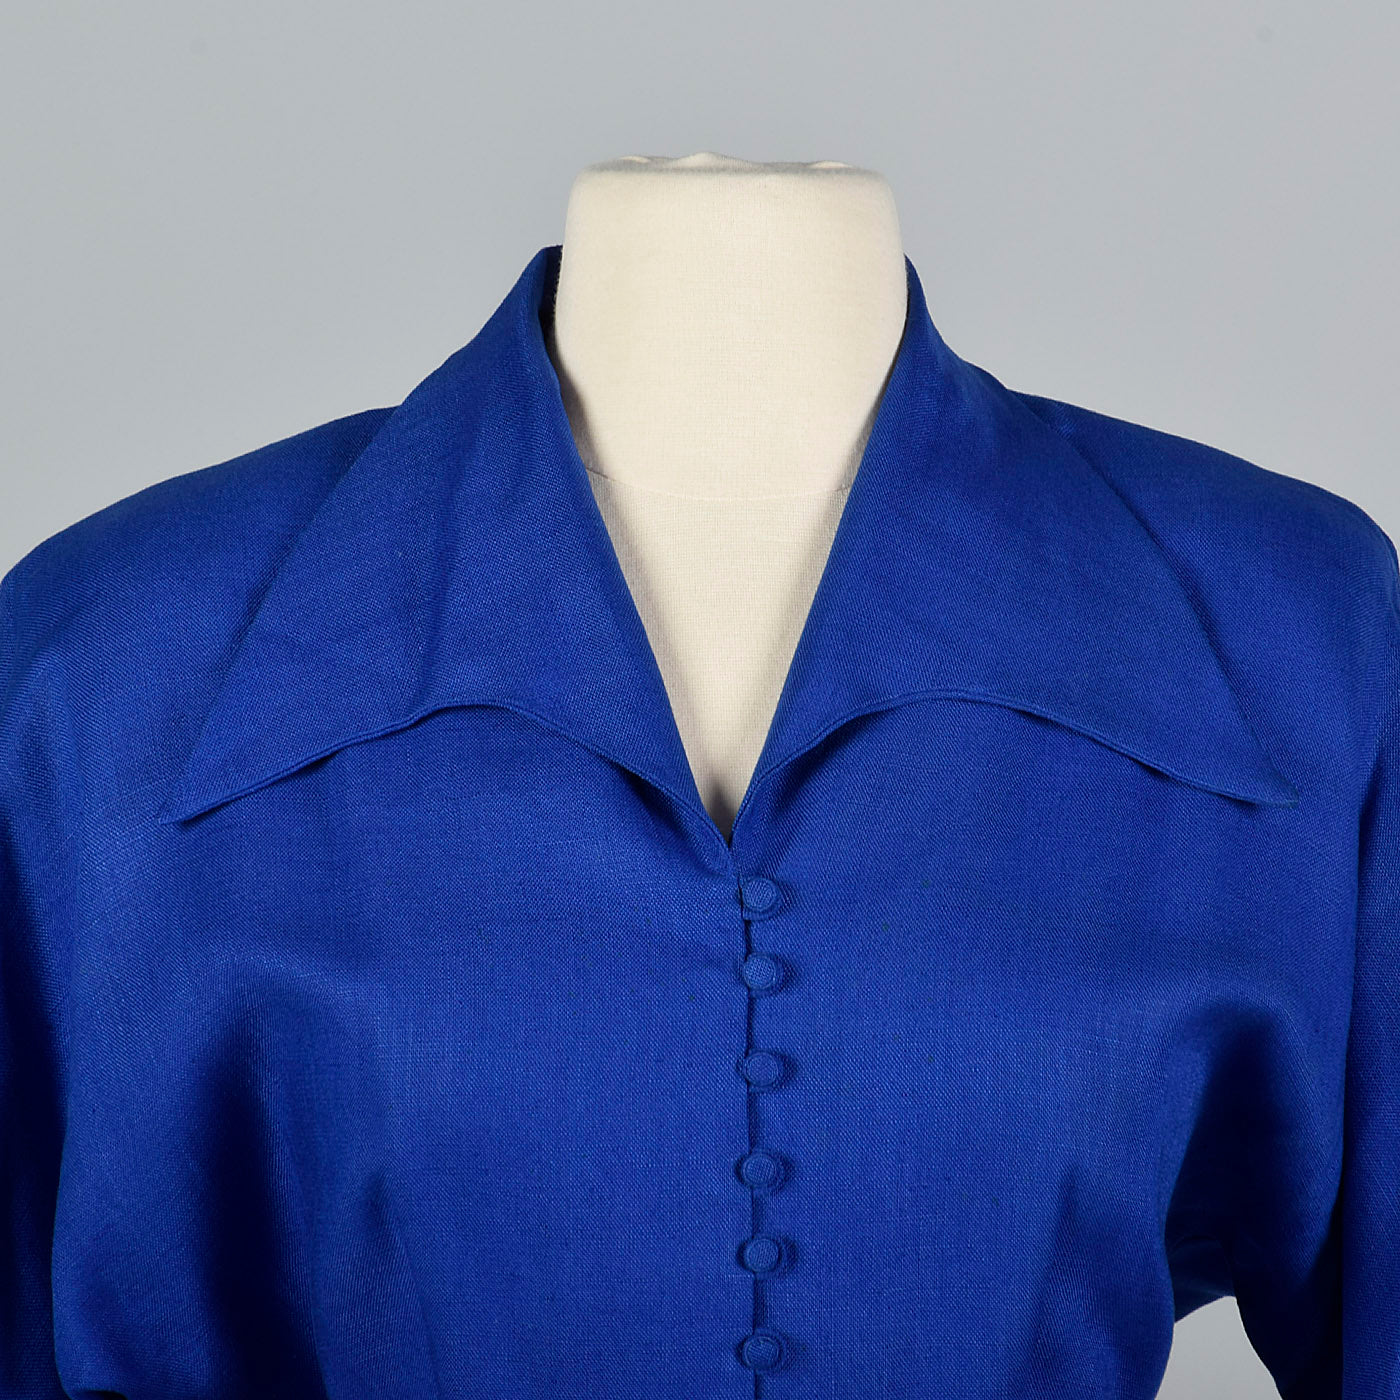 1950s Royal Blue Dress Jacket